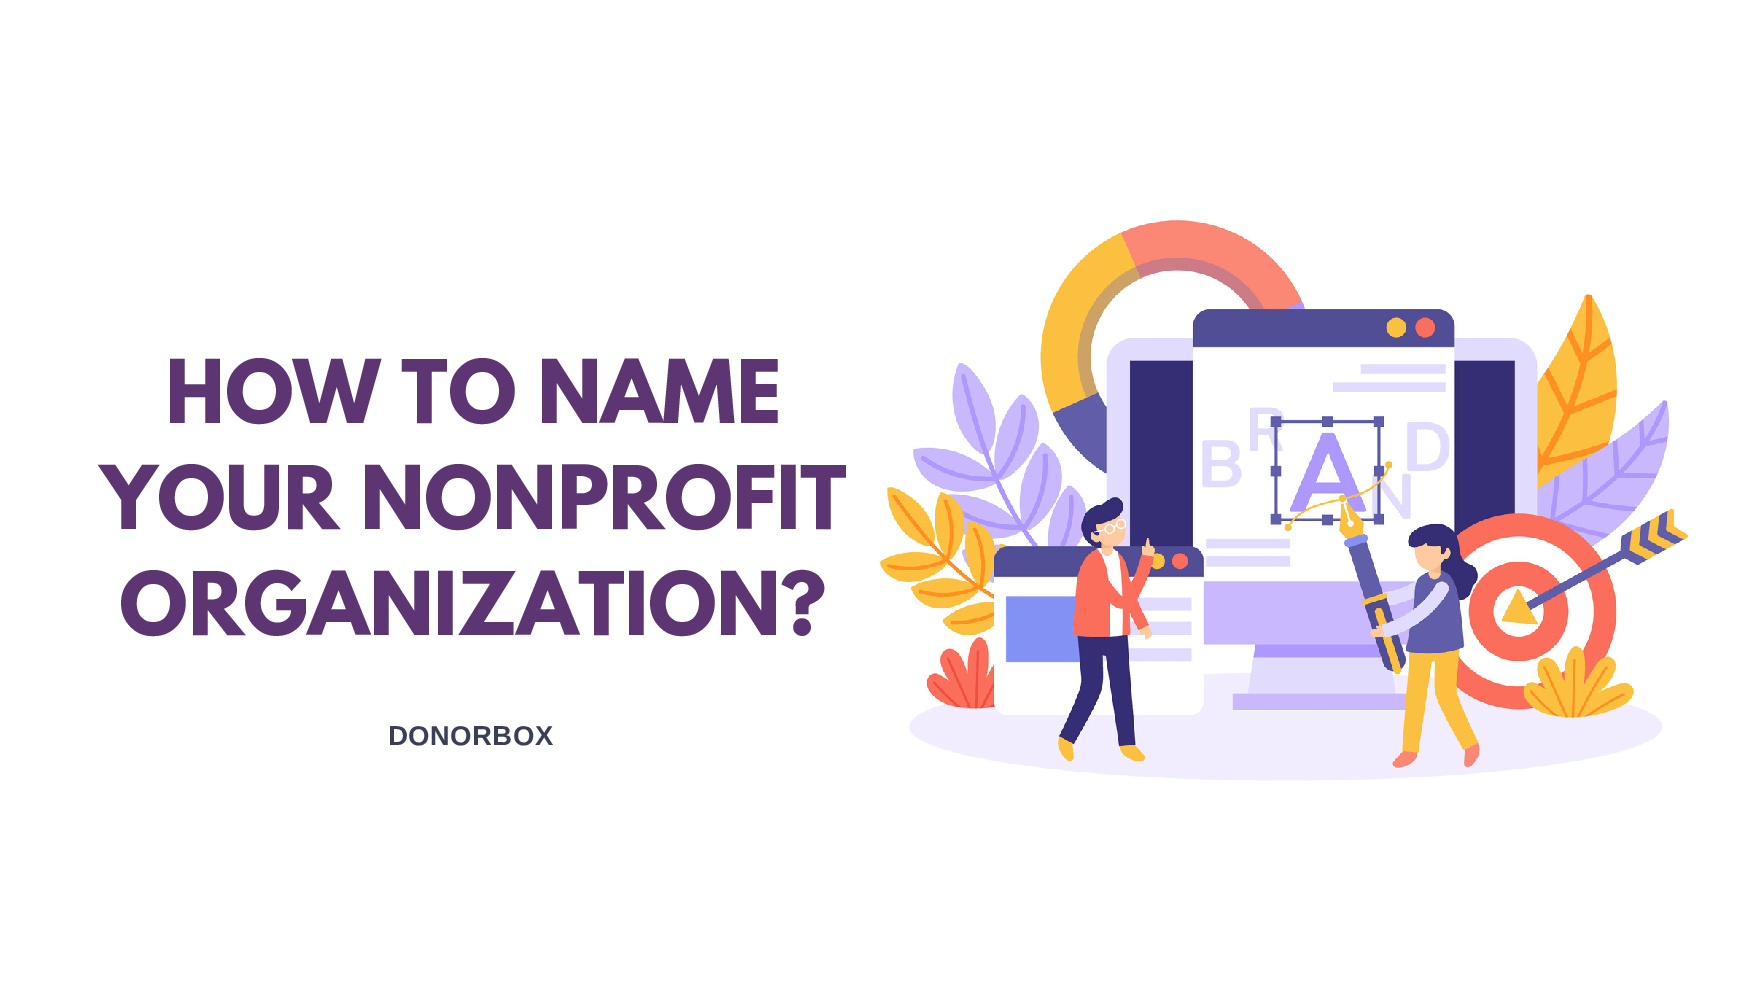 Make it Matter: How to Name Your Nonprofit Organization